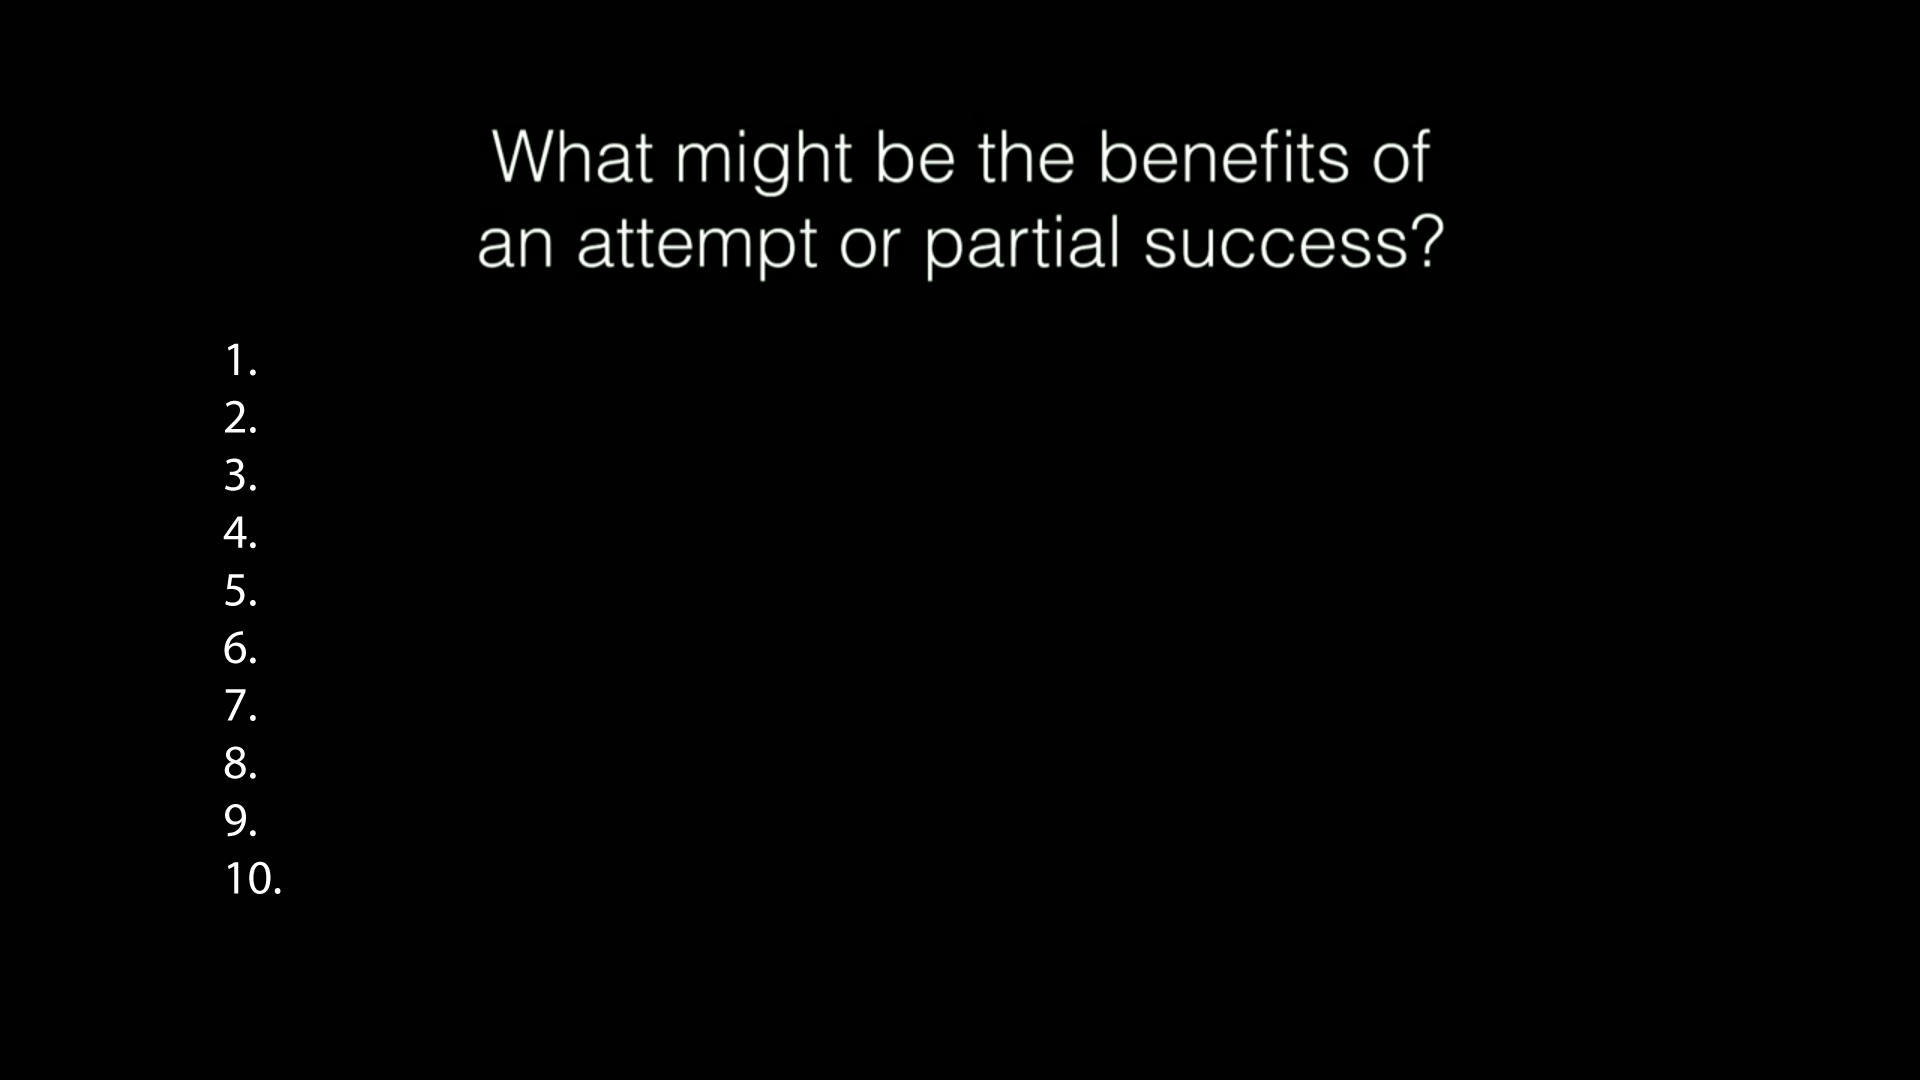 Black square with question 'what might be the benefits of an attempt or partial success?' as title